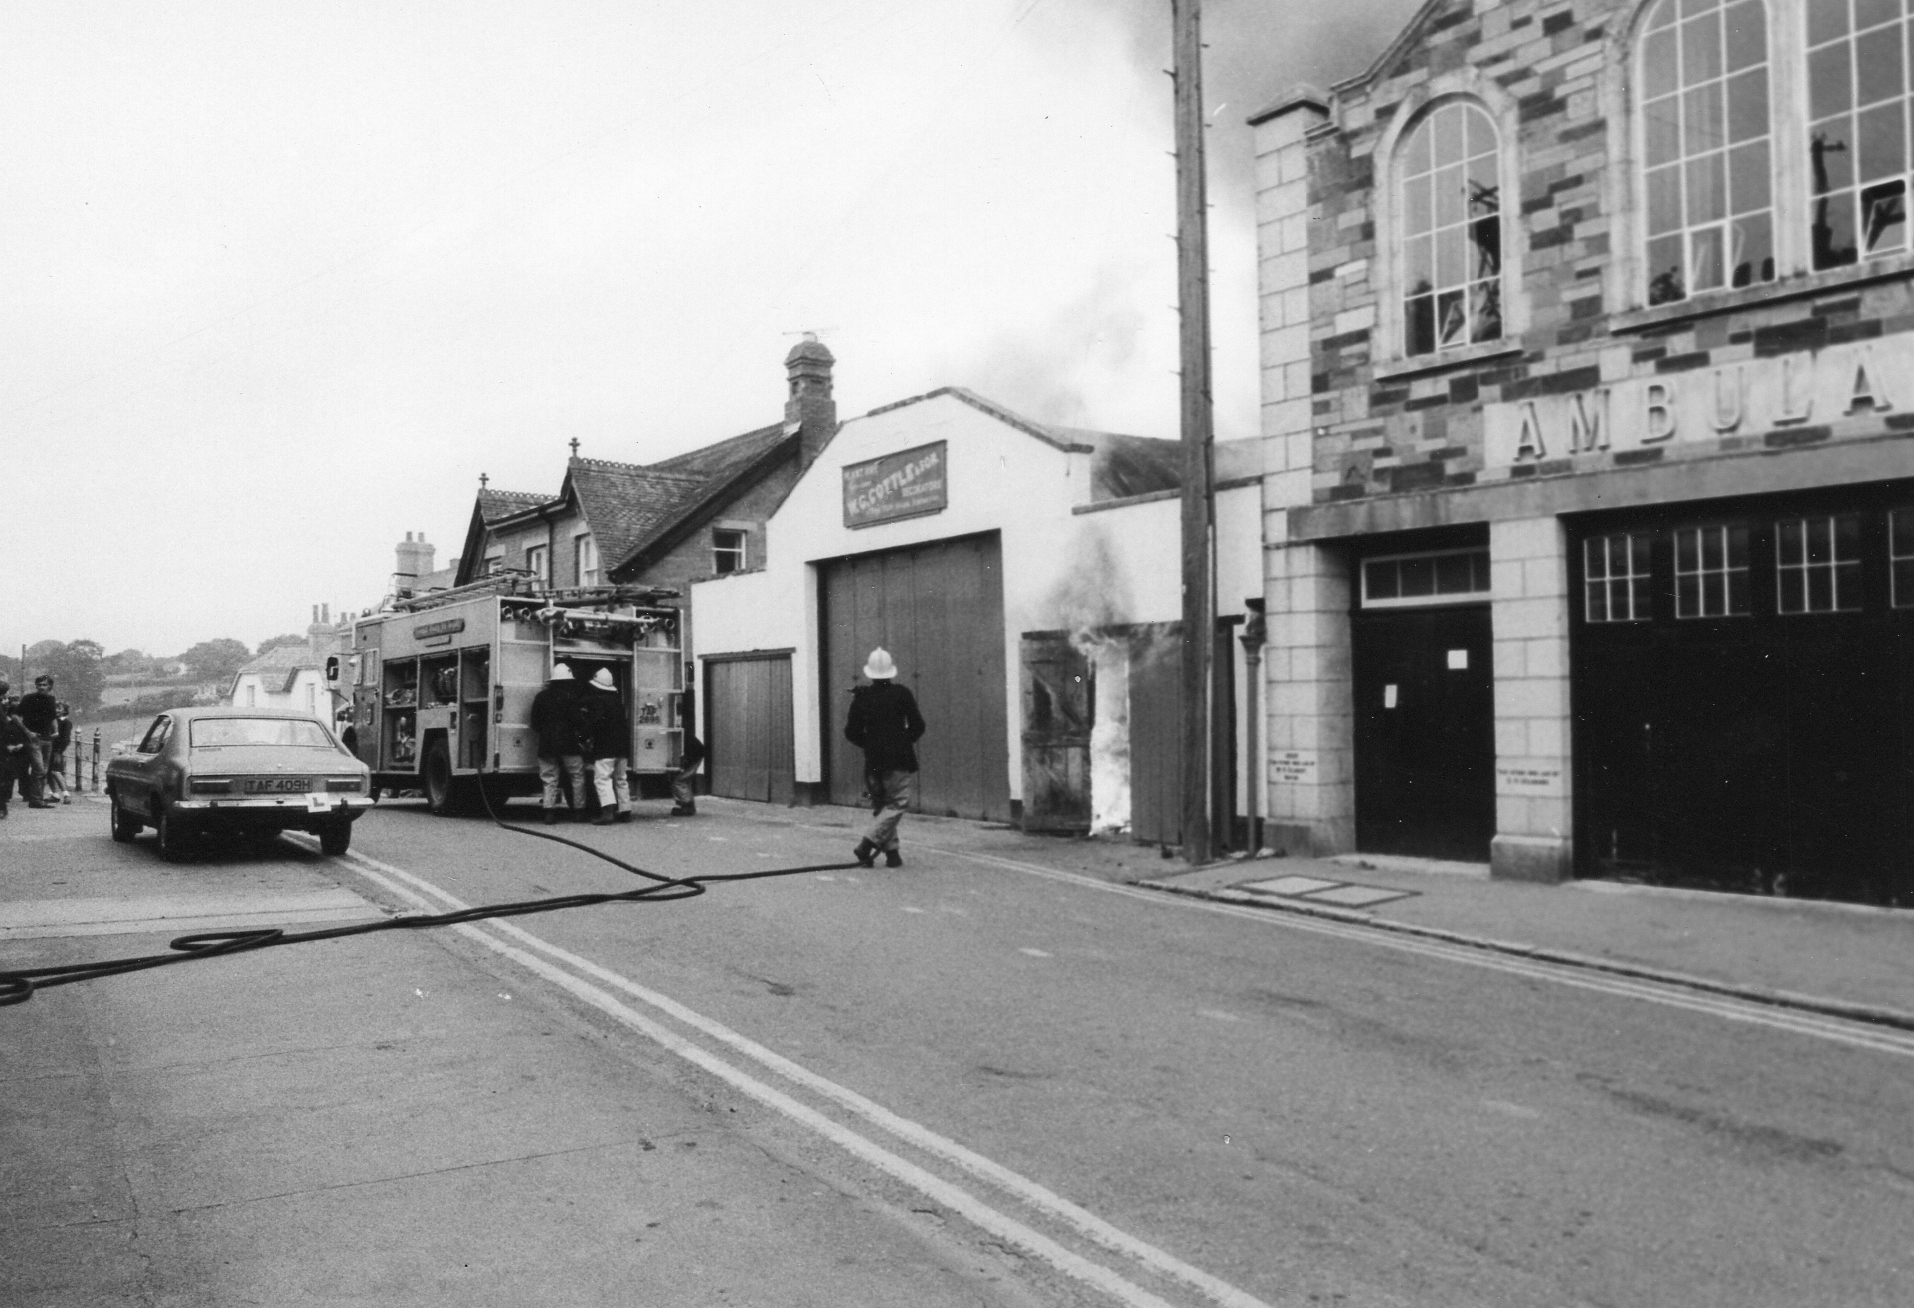 Fire at Charlie Cottle's Workshop in Westgate Street, June 17th, 1982. Photo courtesy of Gary Chapman.